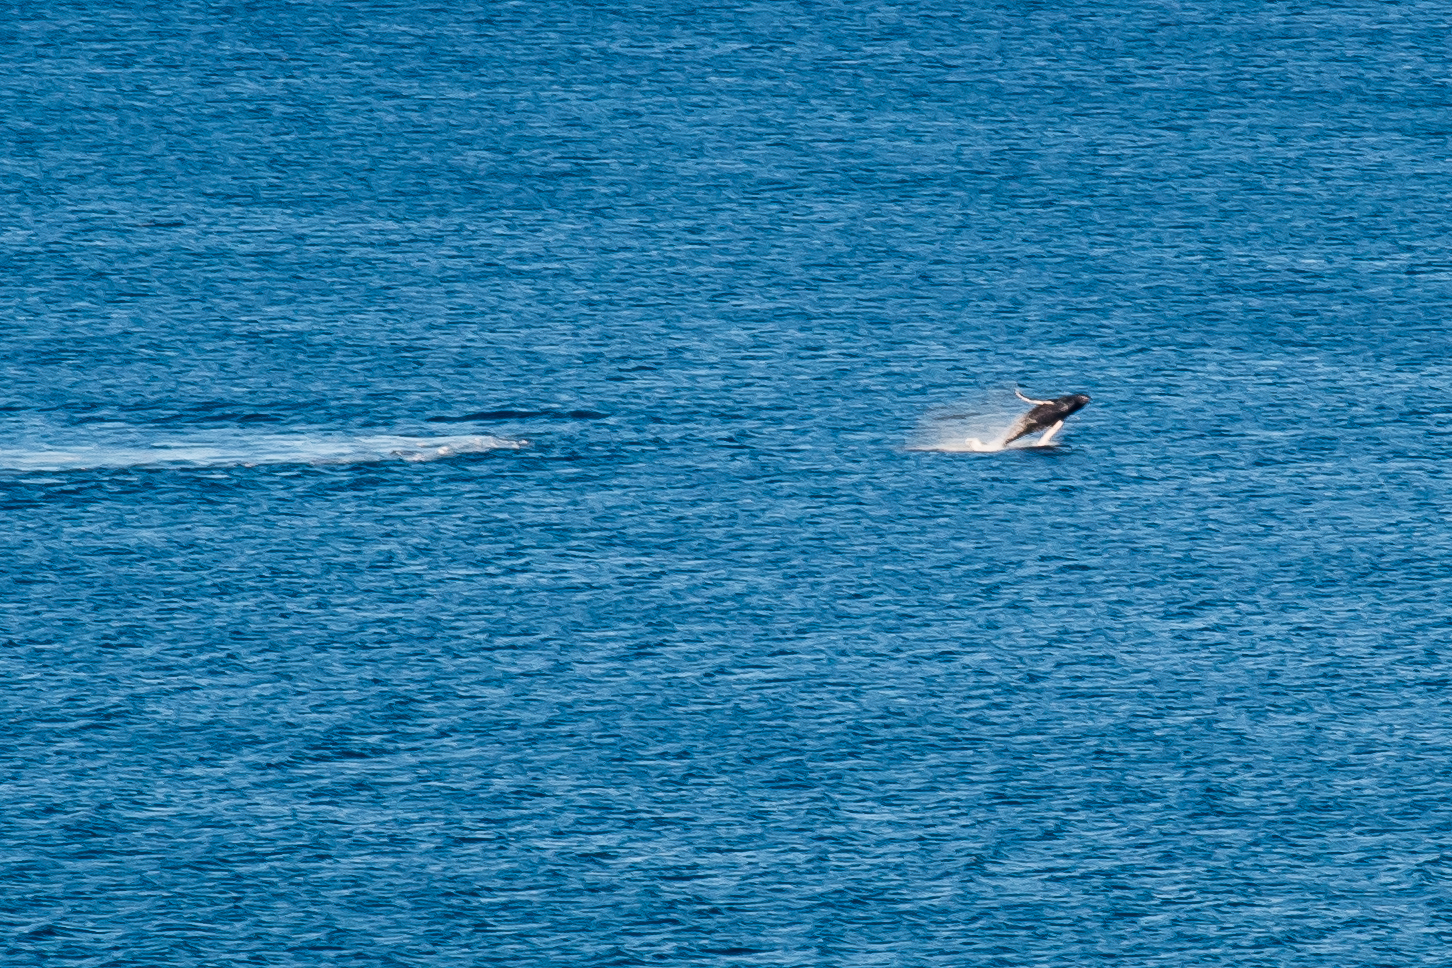 Baby Whale breech-mom is flowing close behind.